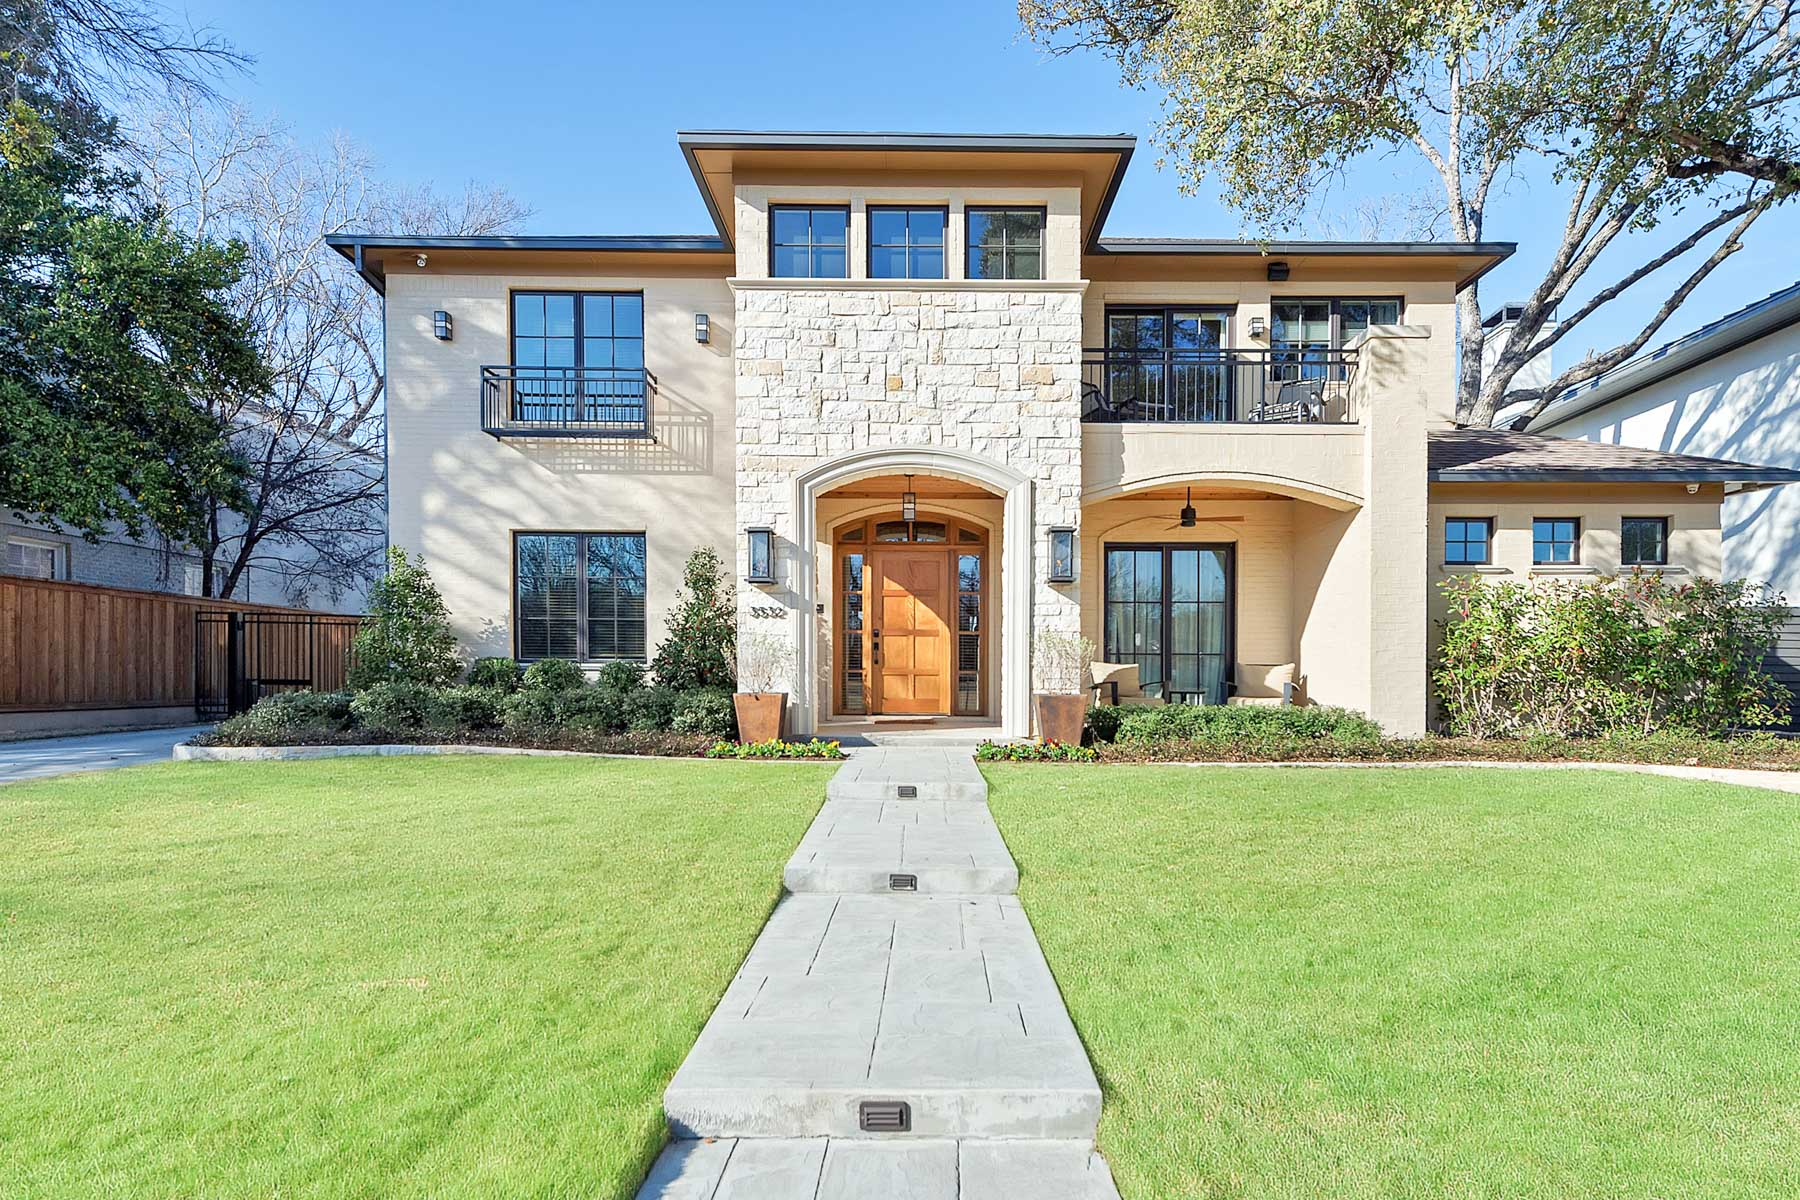 Villa per Vendita alle ore State of the Art Monticello, Traditional 3532 Dorothy Lane N Fort Worth, Texas, 76107 Stati Uniti